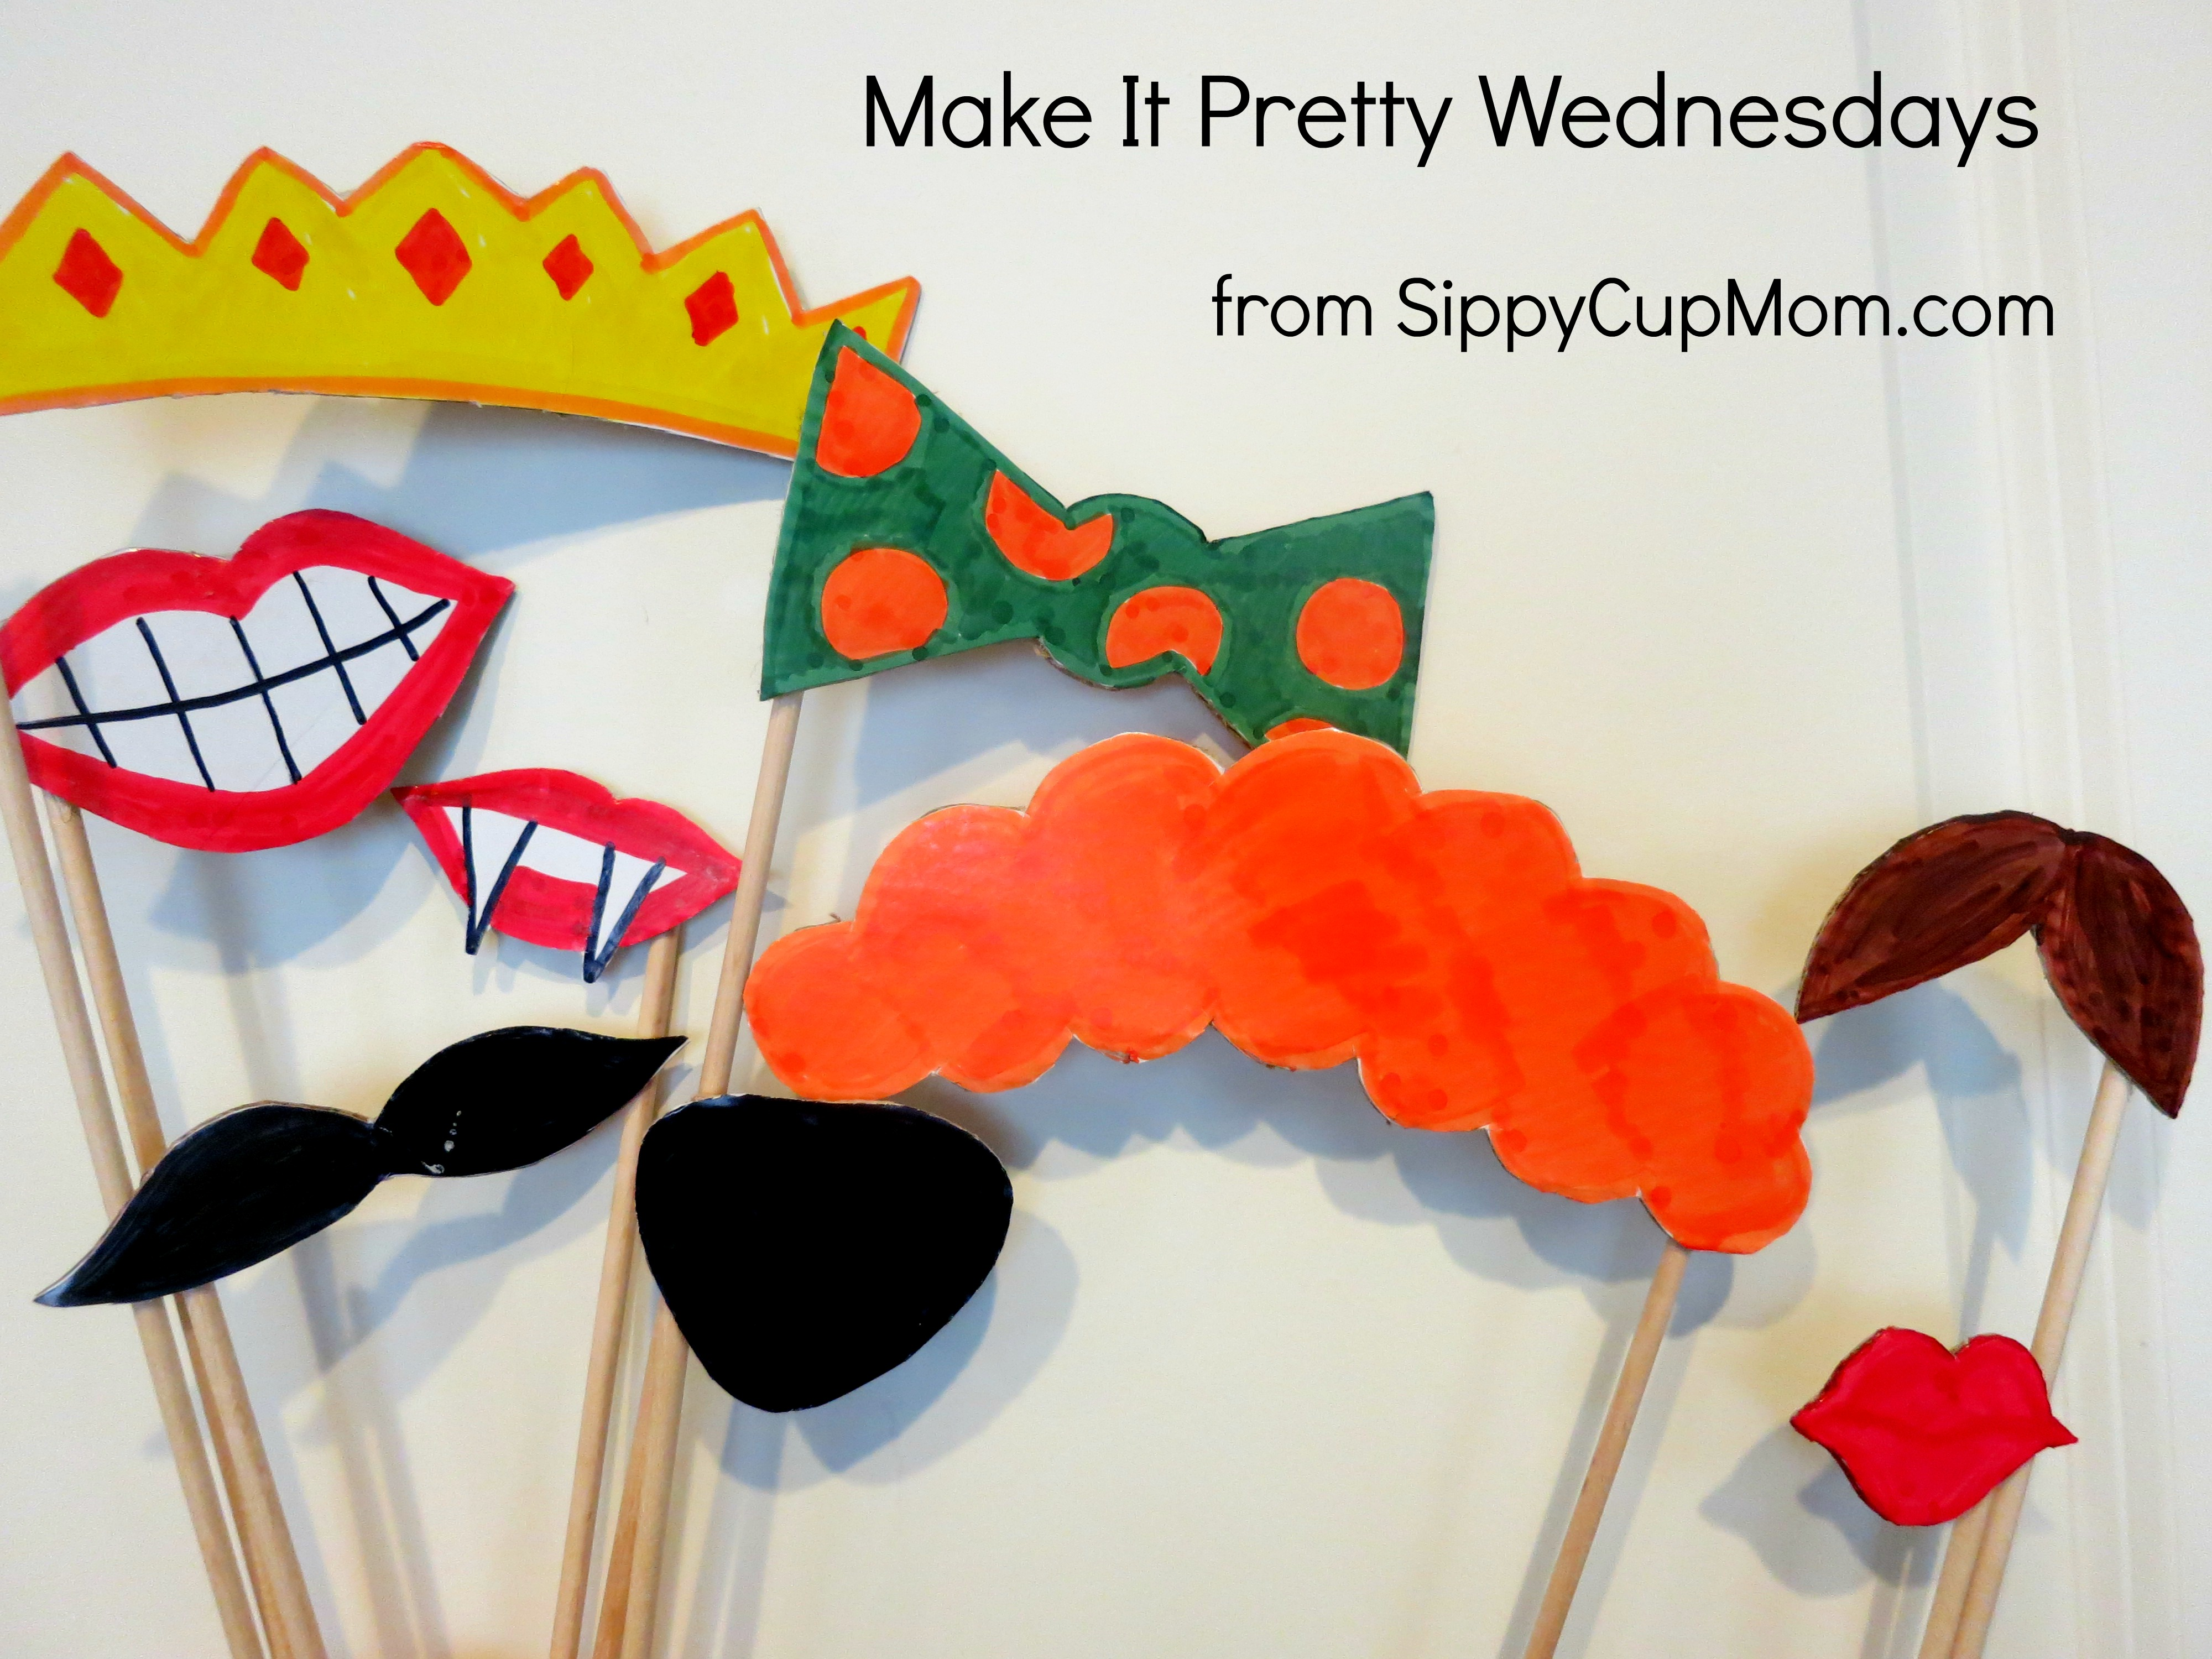 Make It Pretty Wednesdays: Photo Props! - Sippy Cup Mom